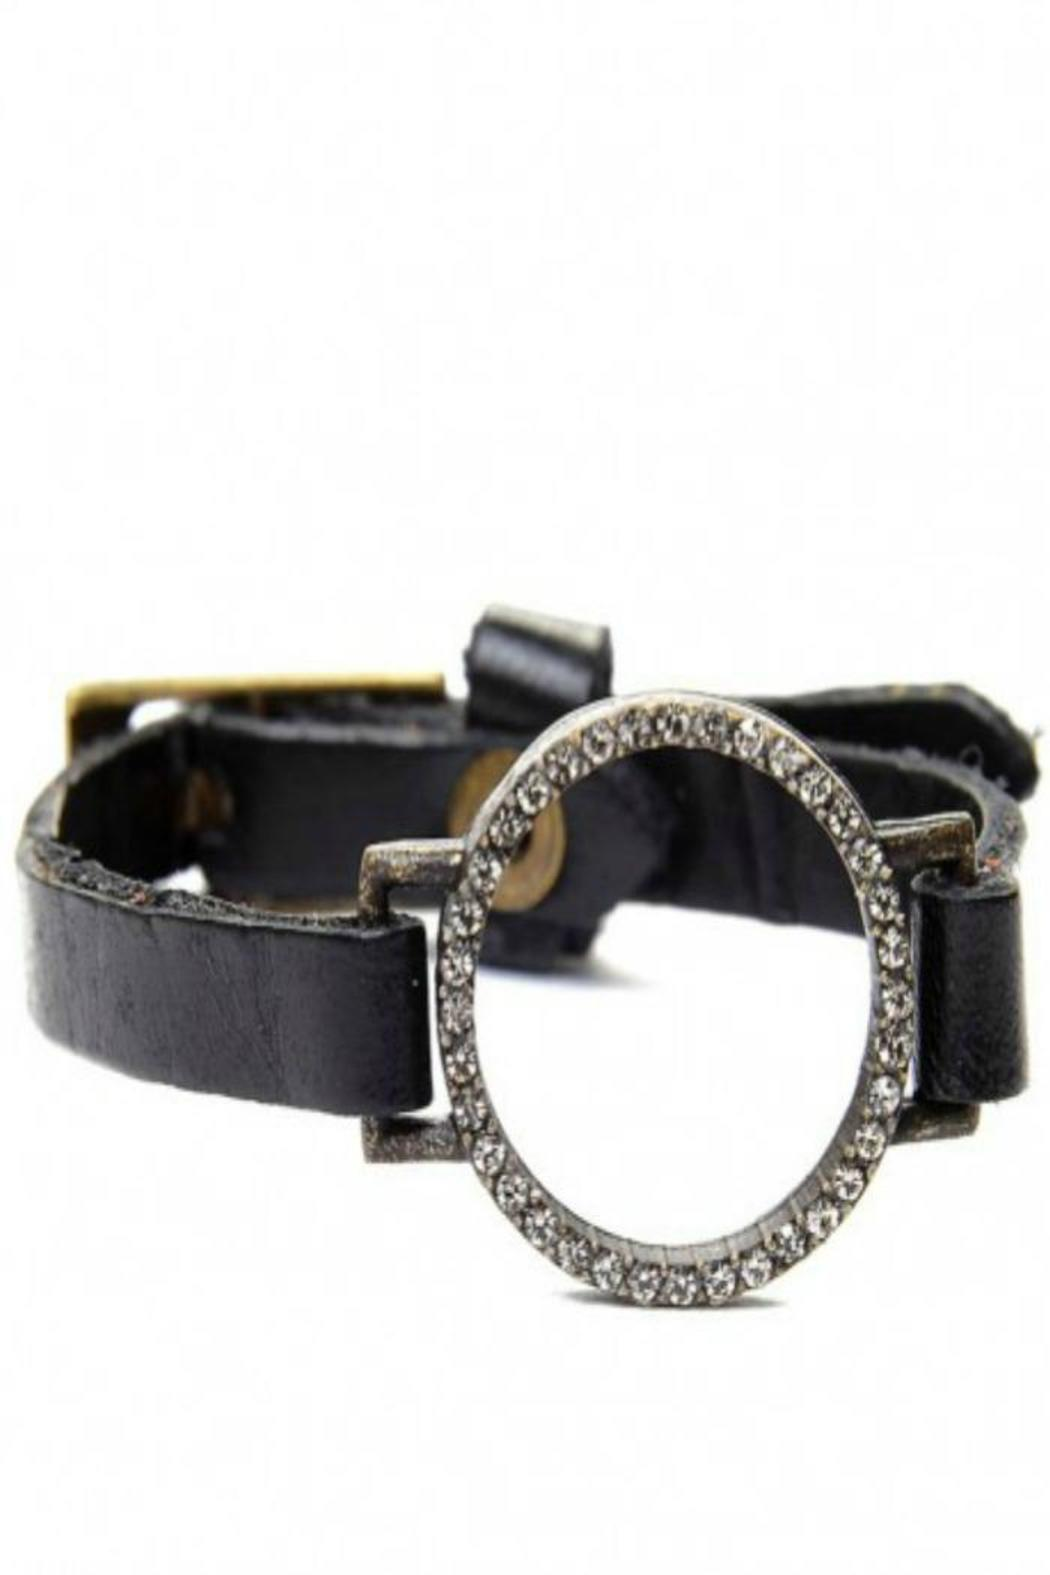 Rebel designs skinny circle band from atlanta by collage for Rebel designs jewelry sale